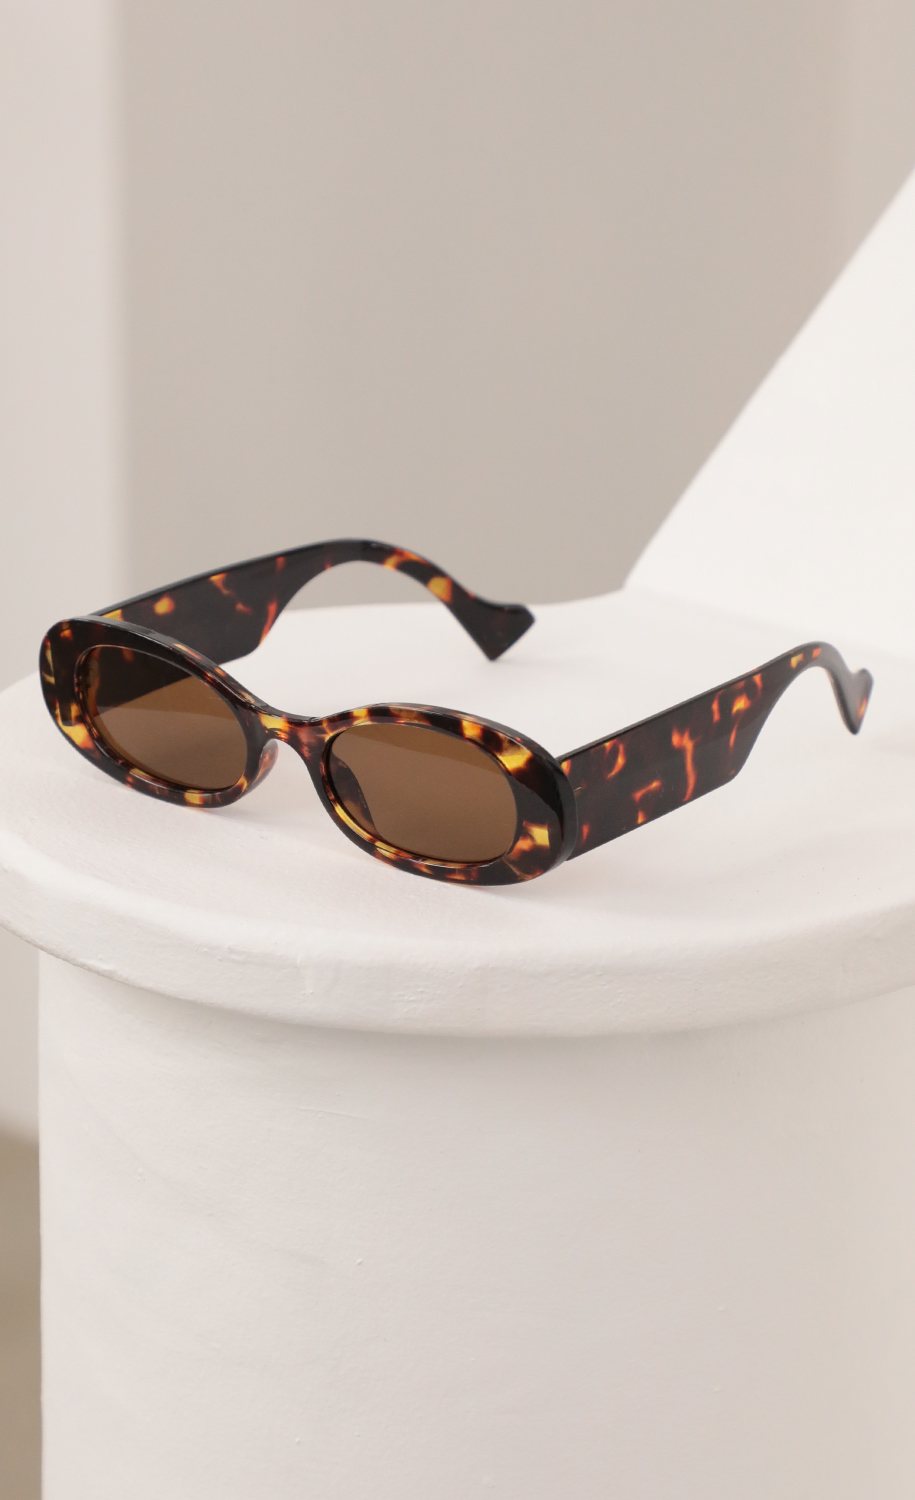 Daisy oval sunglasses in Brown Tortoise